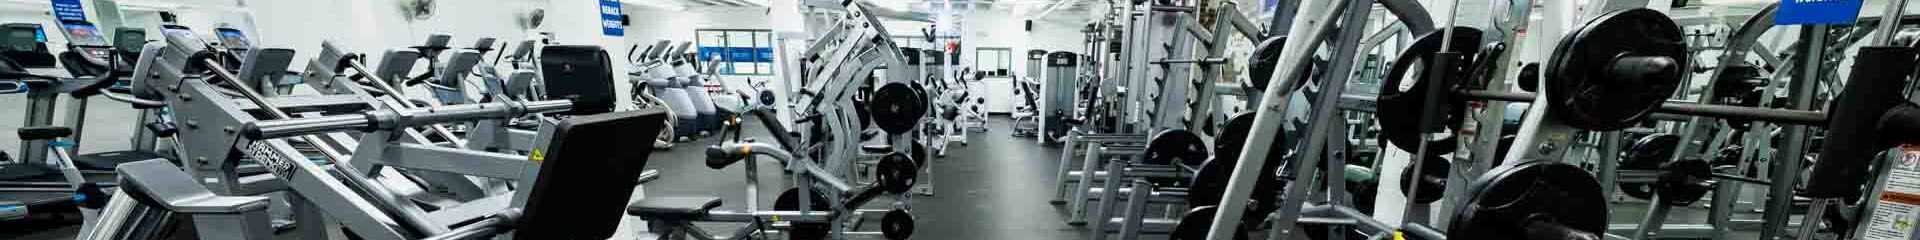 Panoramic view of a gym filled with equipment